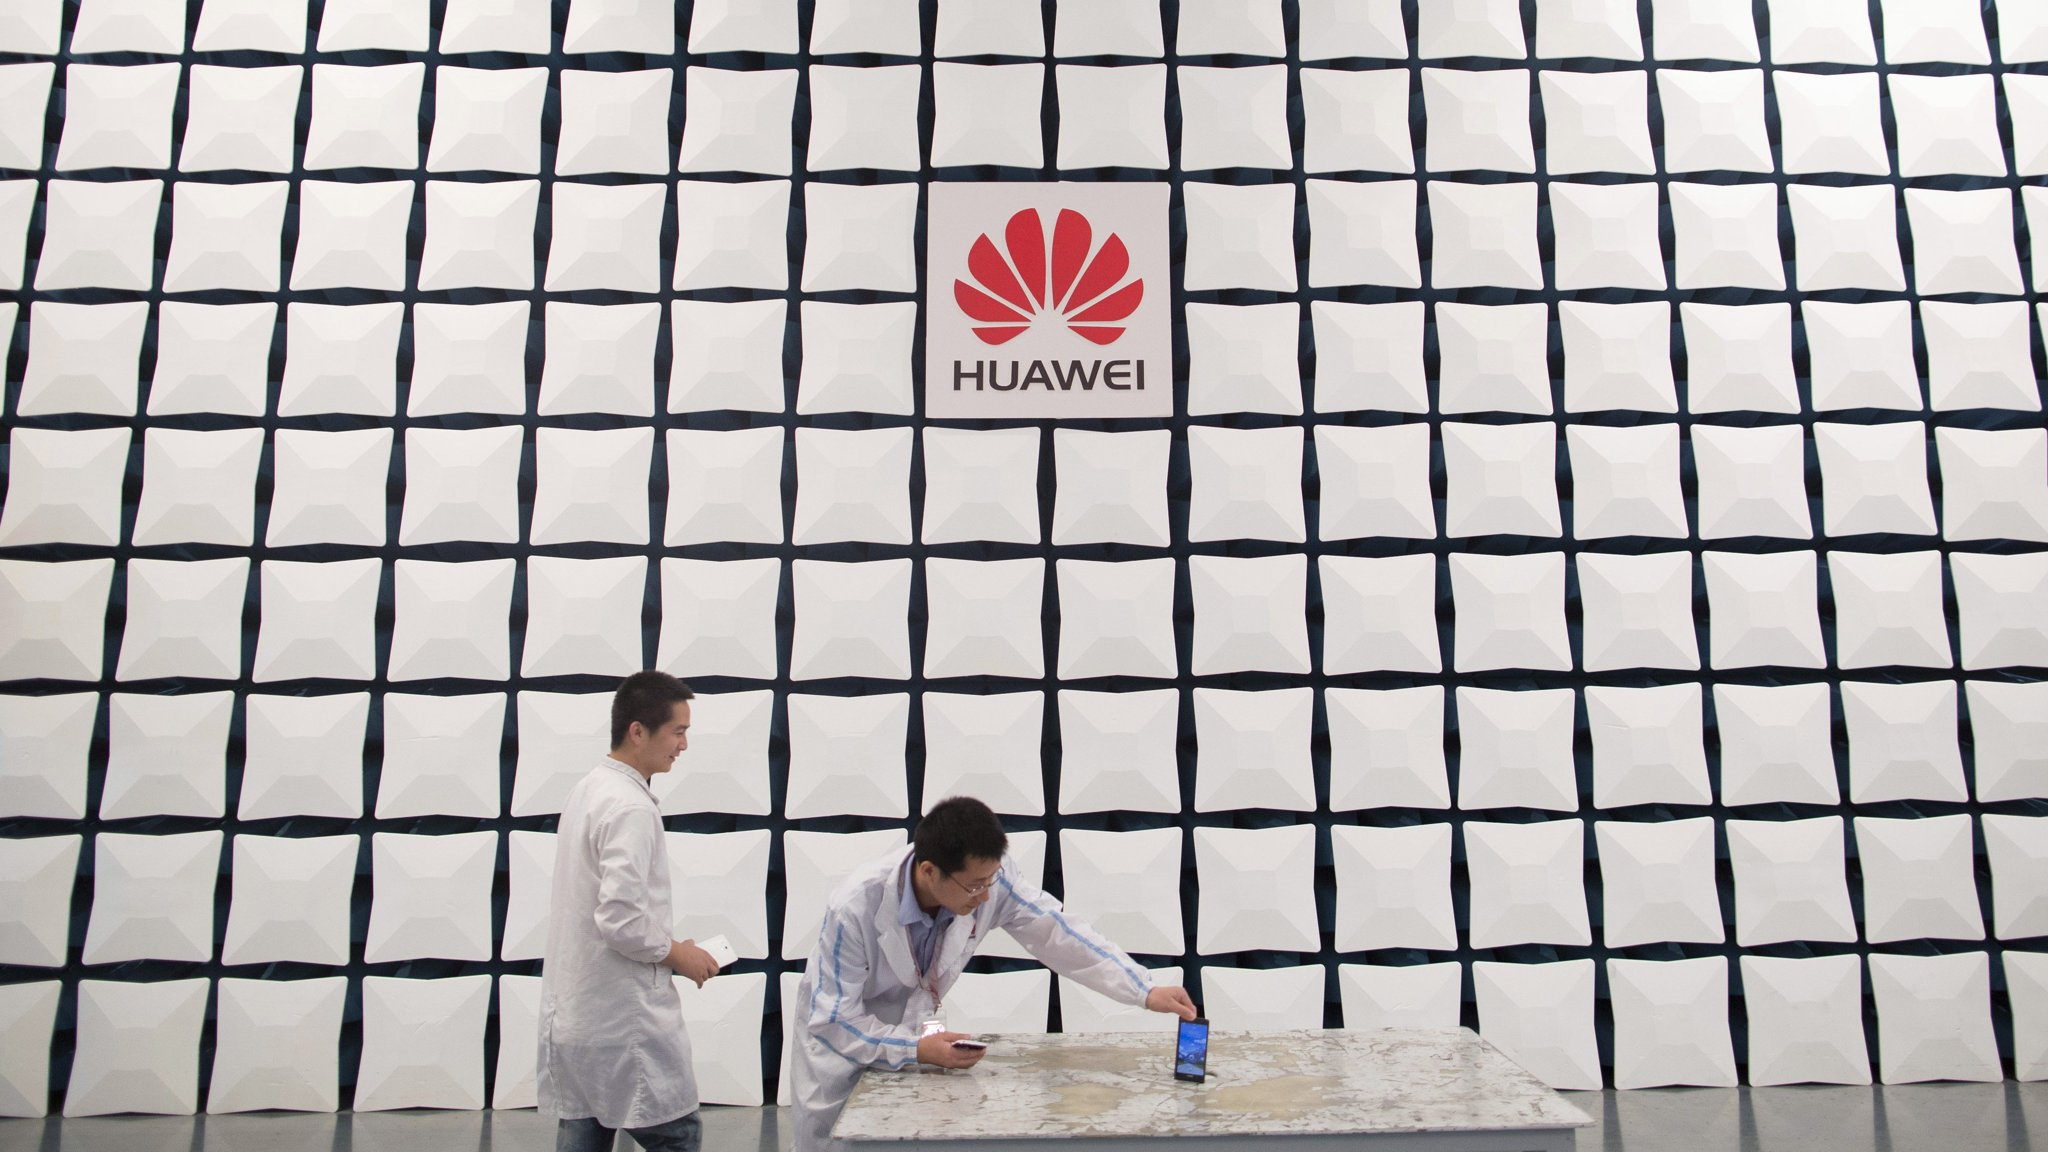 Image result for Blanket bans on Chinese tech companies like Huawei make no sense